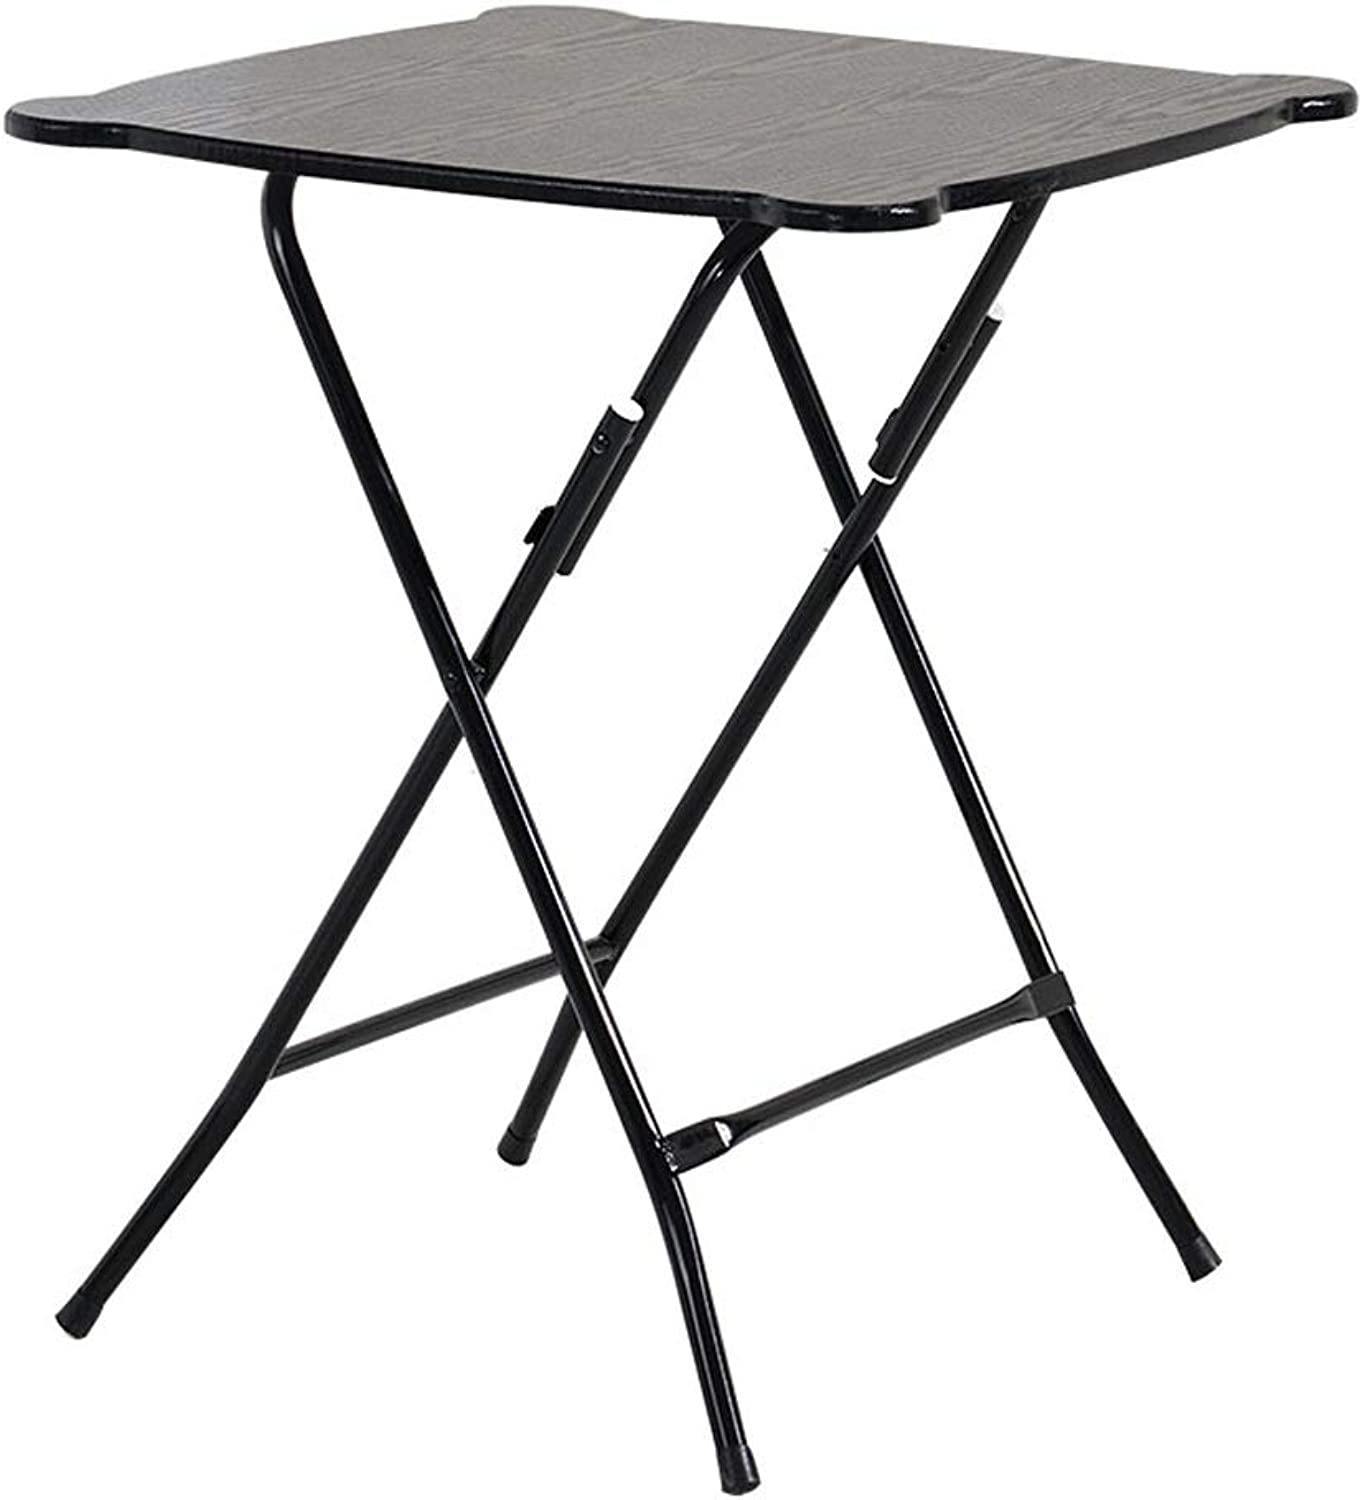 SHWSM Folding Table Dining Table Home Simple Small Apartment 2 People 4 People Portable Dining Table Square Round Small Table Folding Table (color   A)